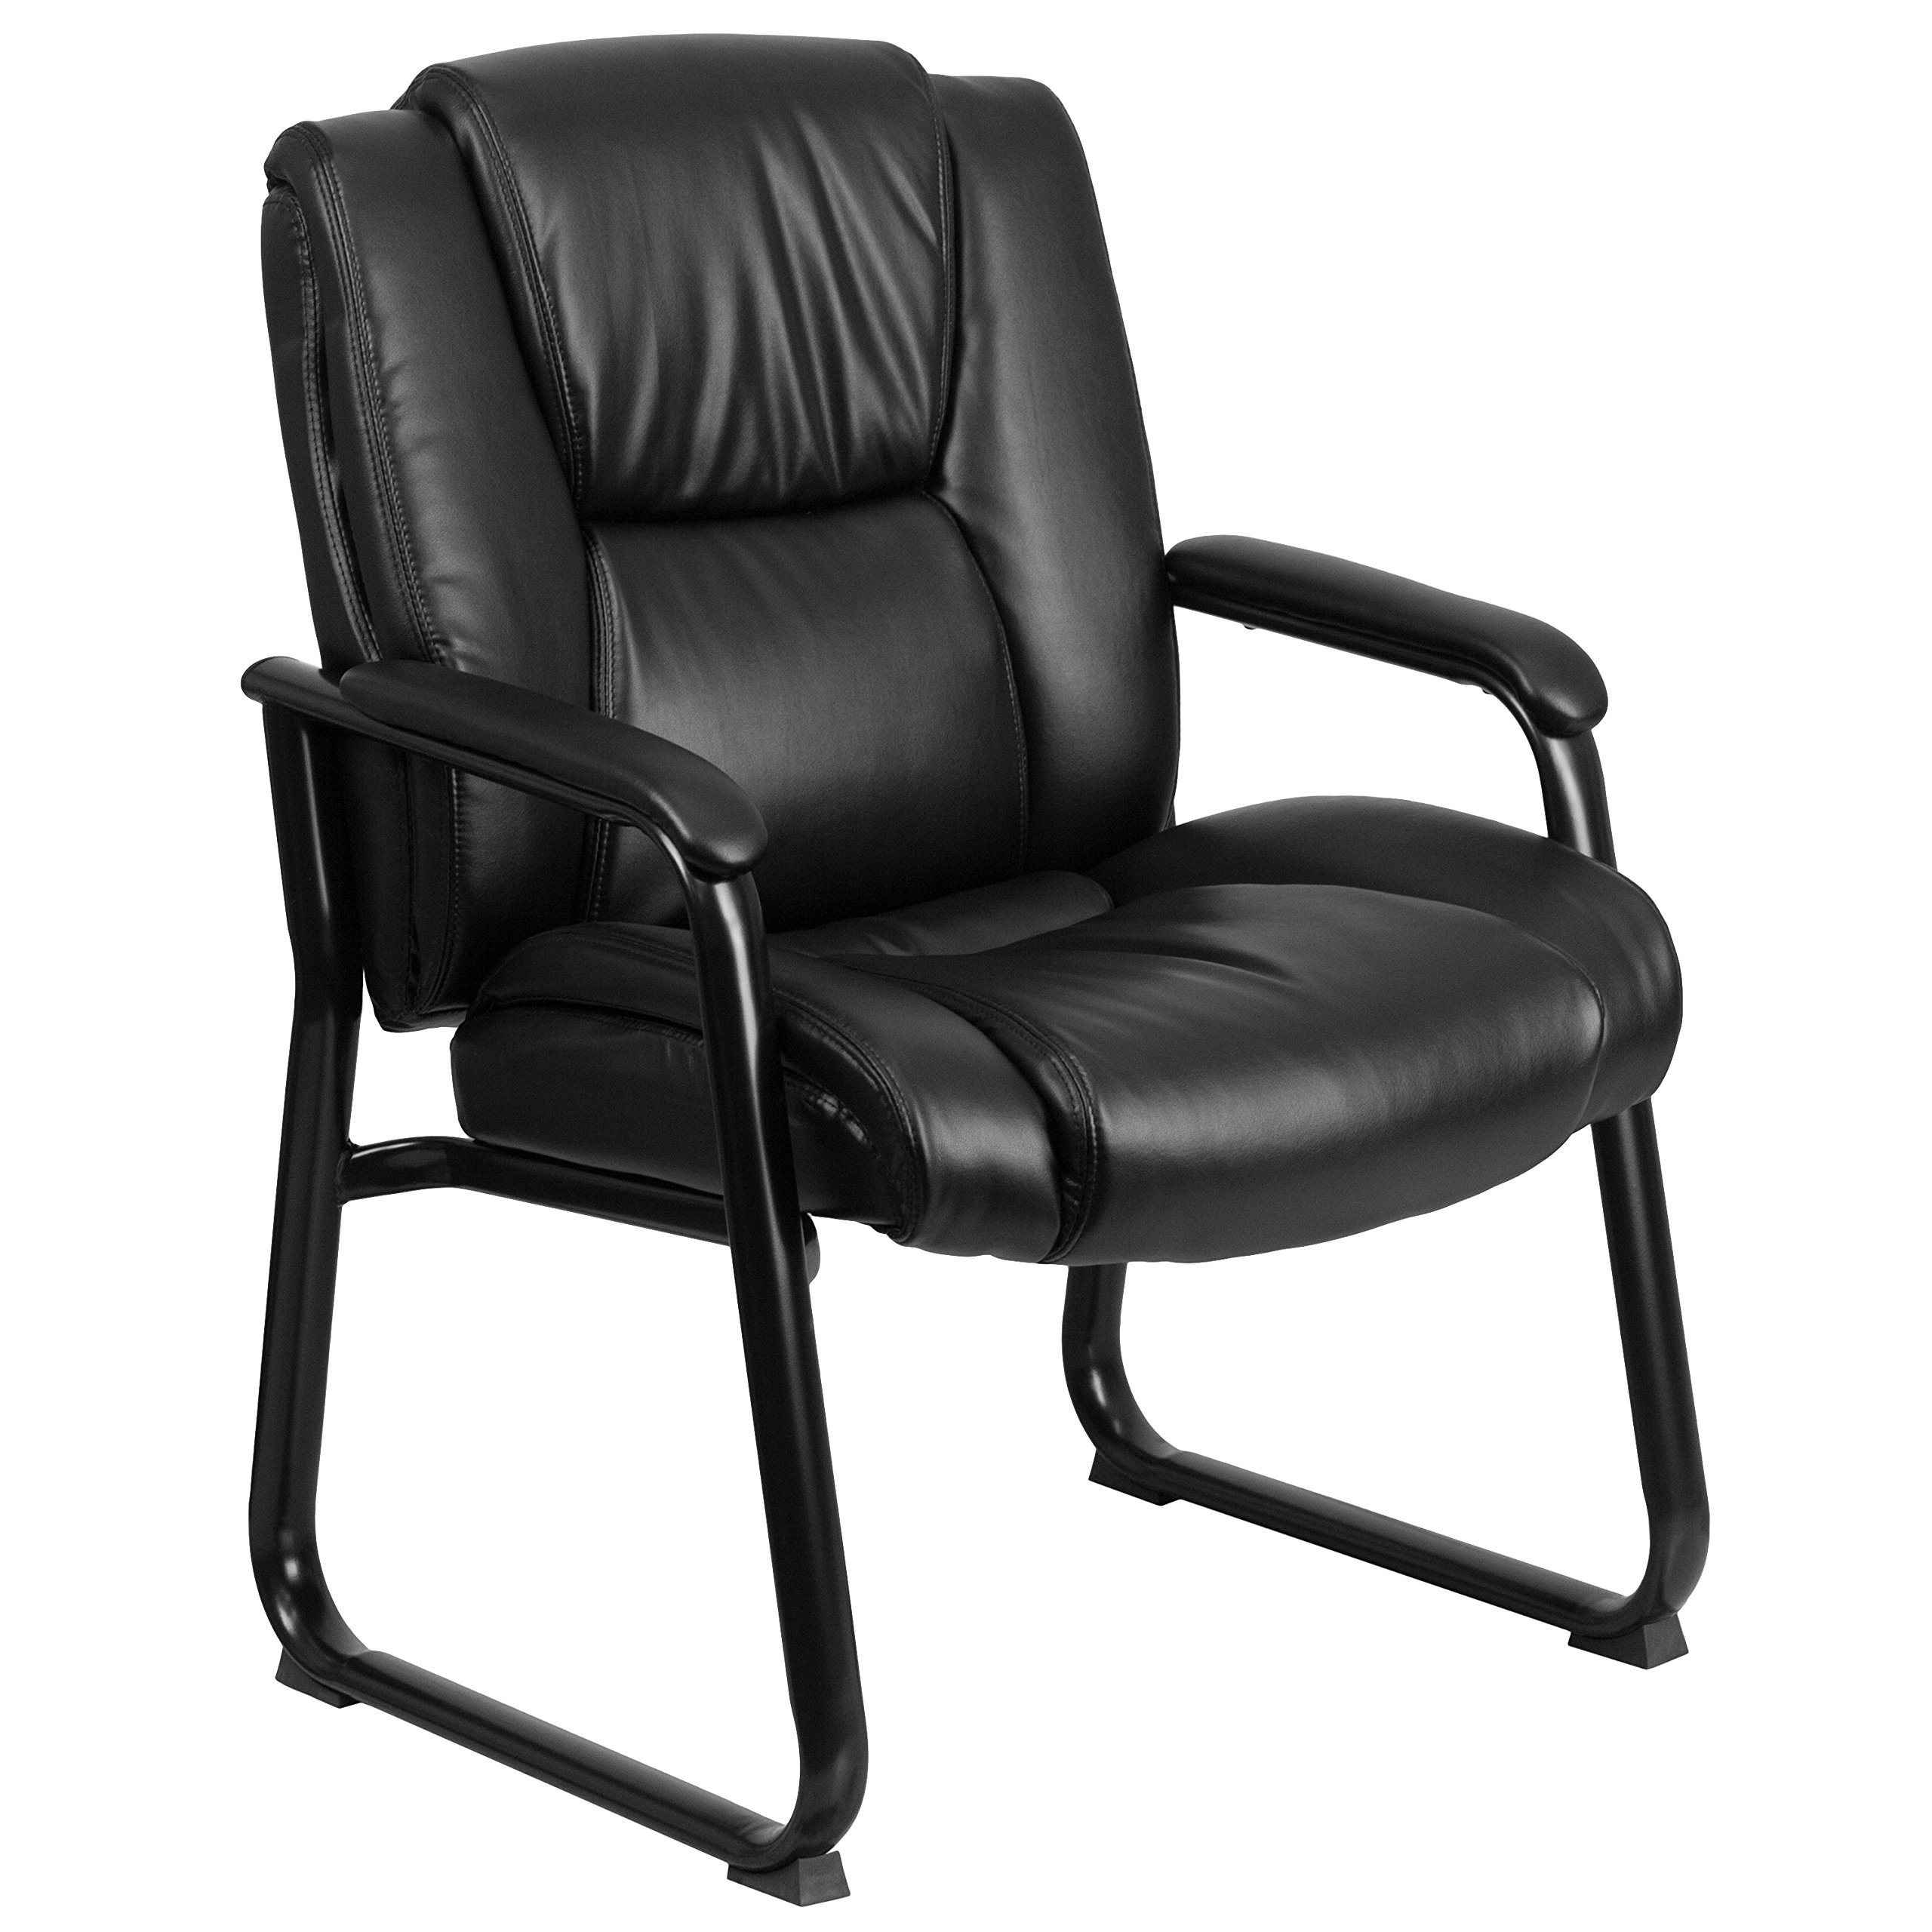 Flash Furniture Reception Chairs  Black LeatherSoft Side Chairs for  Reception and Office